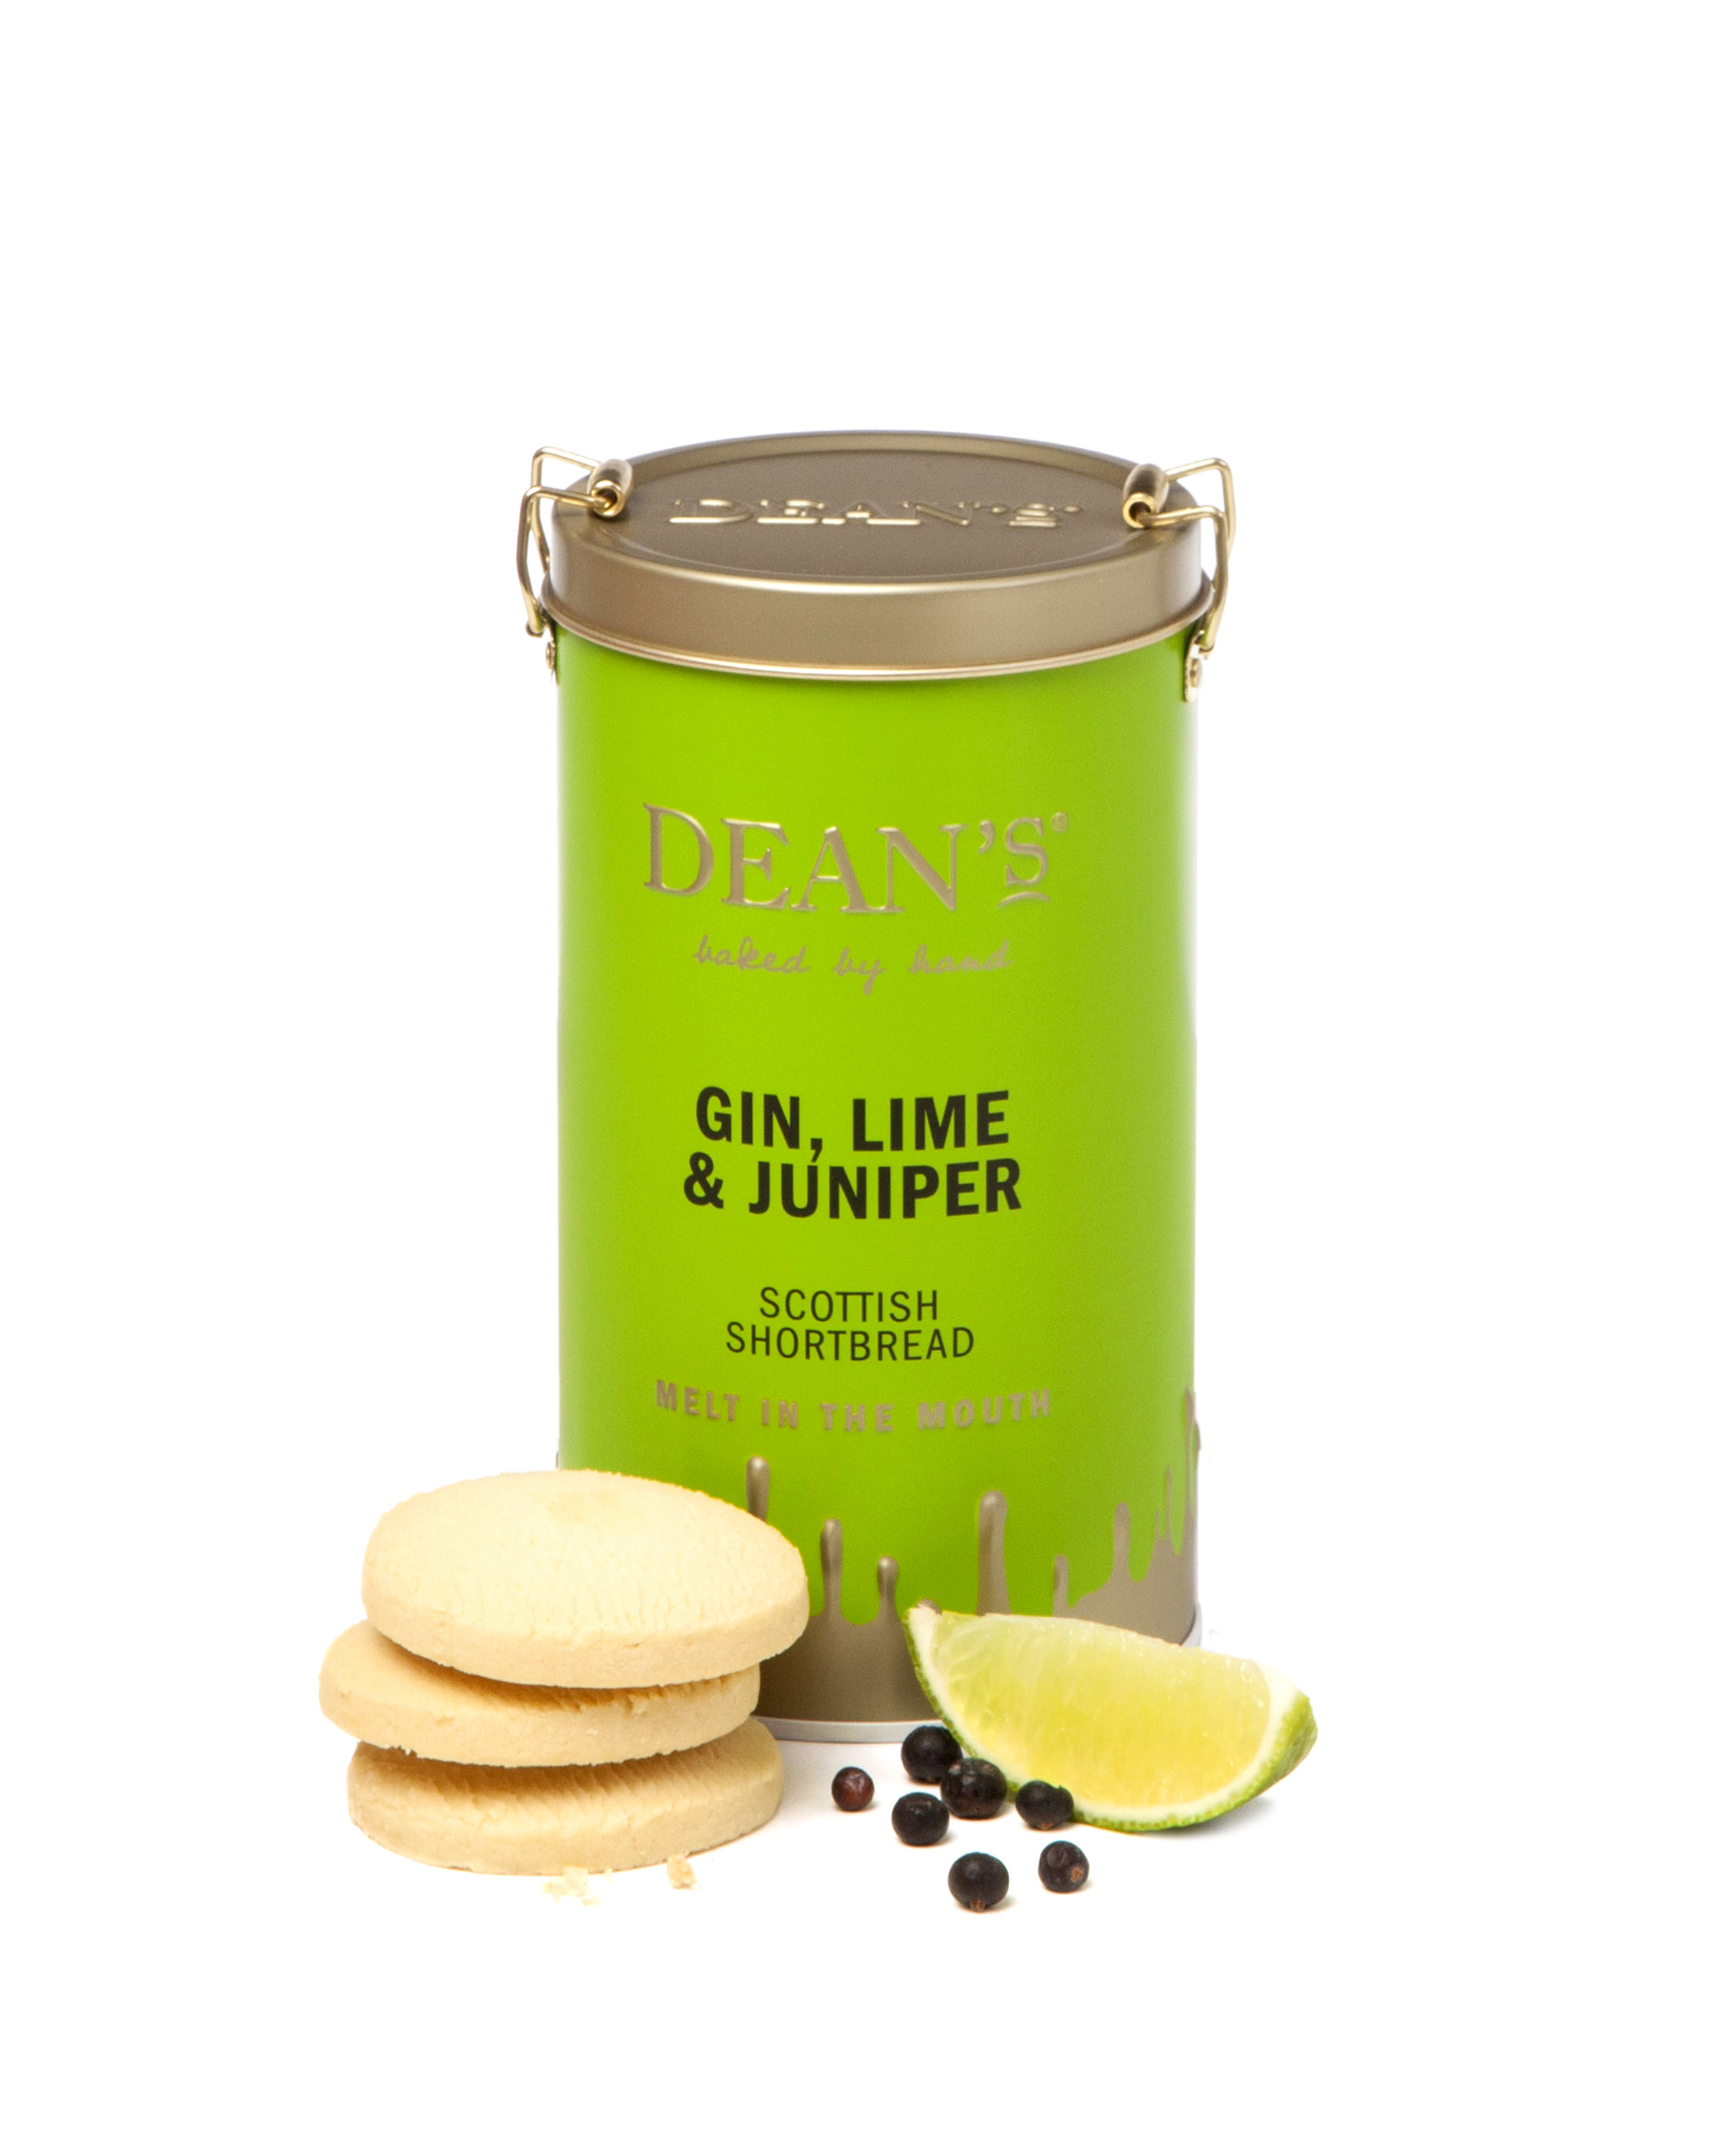 DEAN'S GIN, LIME & JUNIPER SCOTTISH SHORTBREAD (150G)-7774